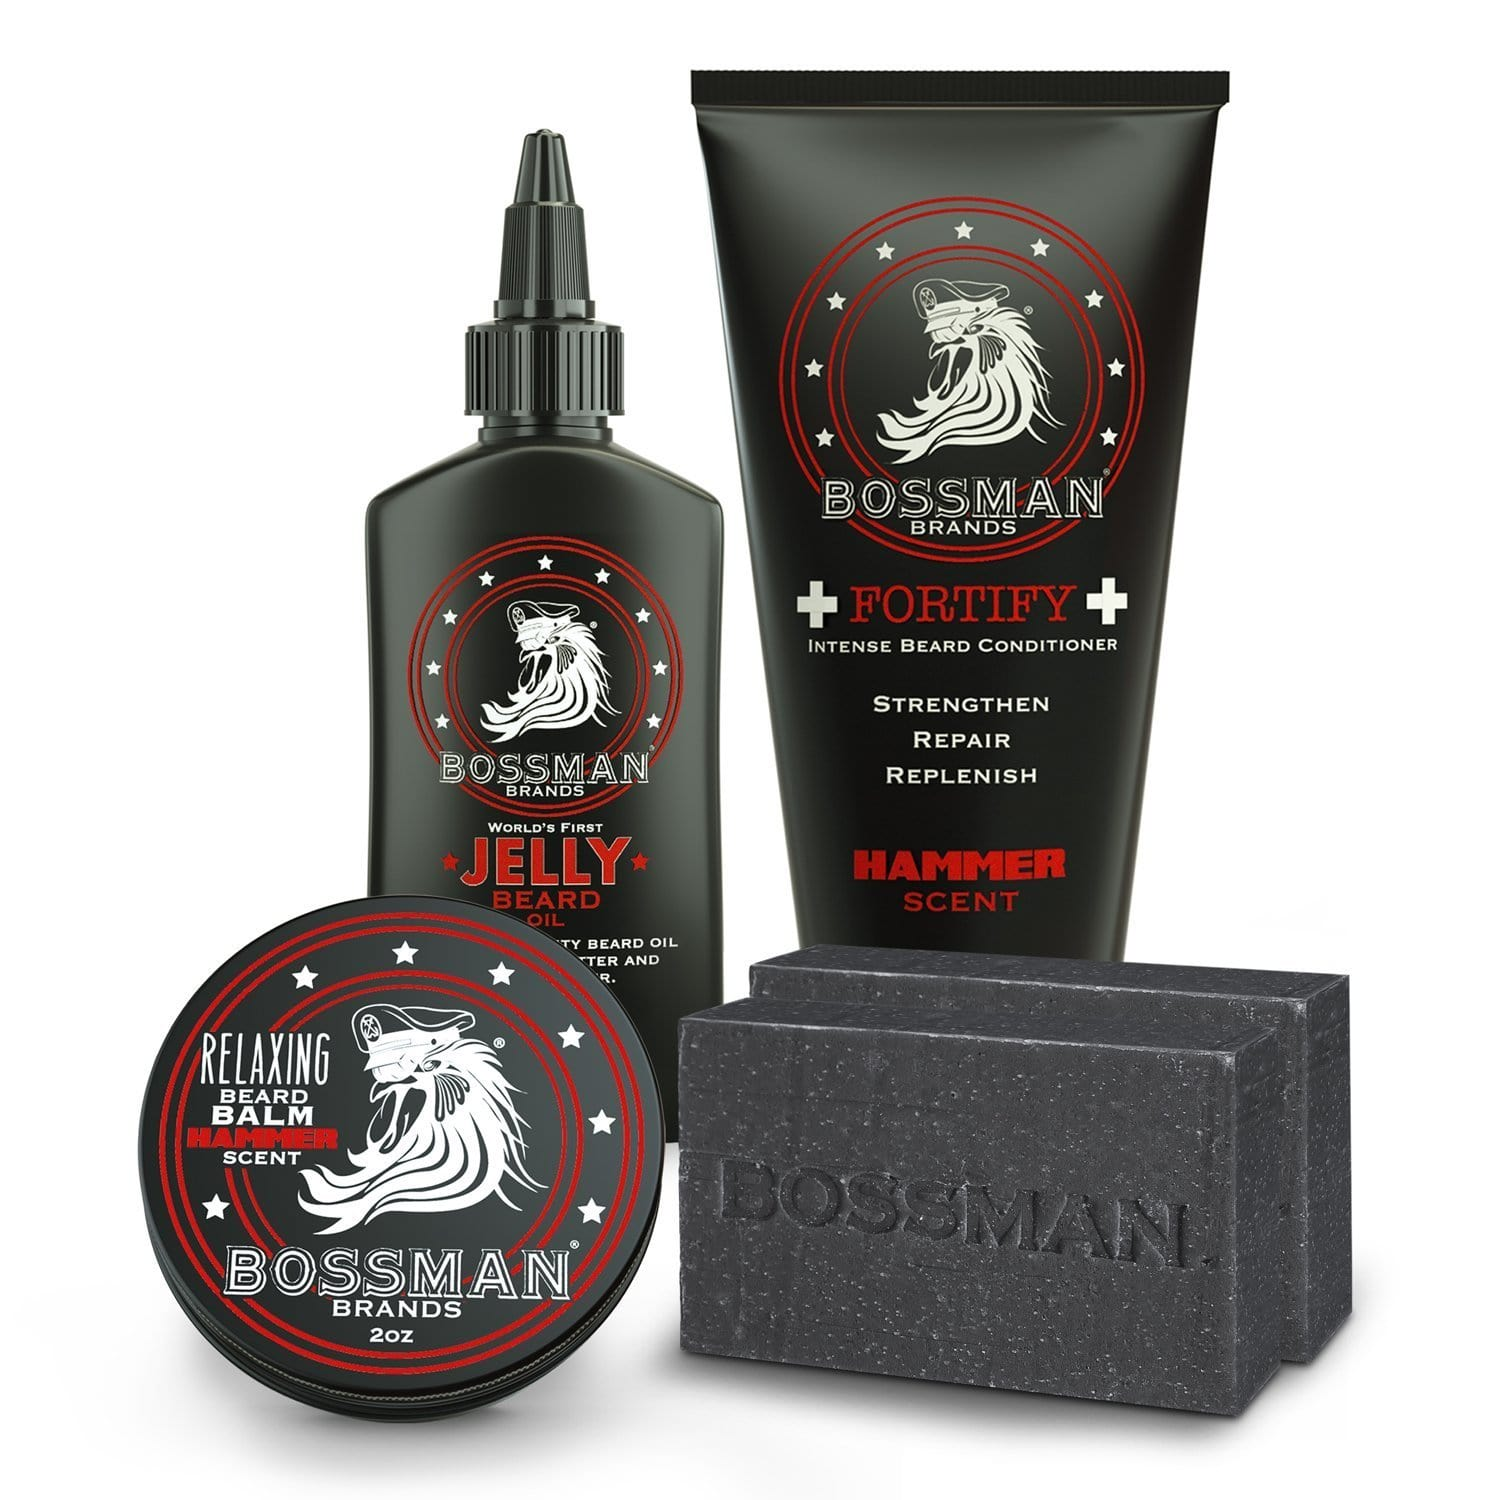 Bossman Reload Beard Care Kit - Hammer Scent